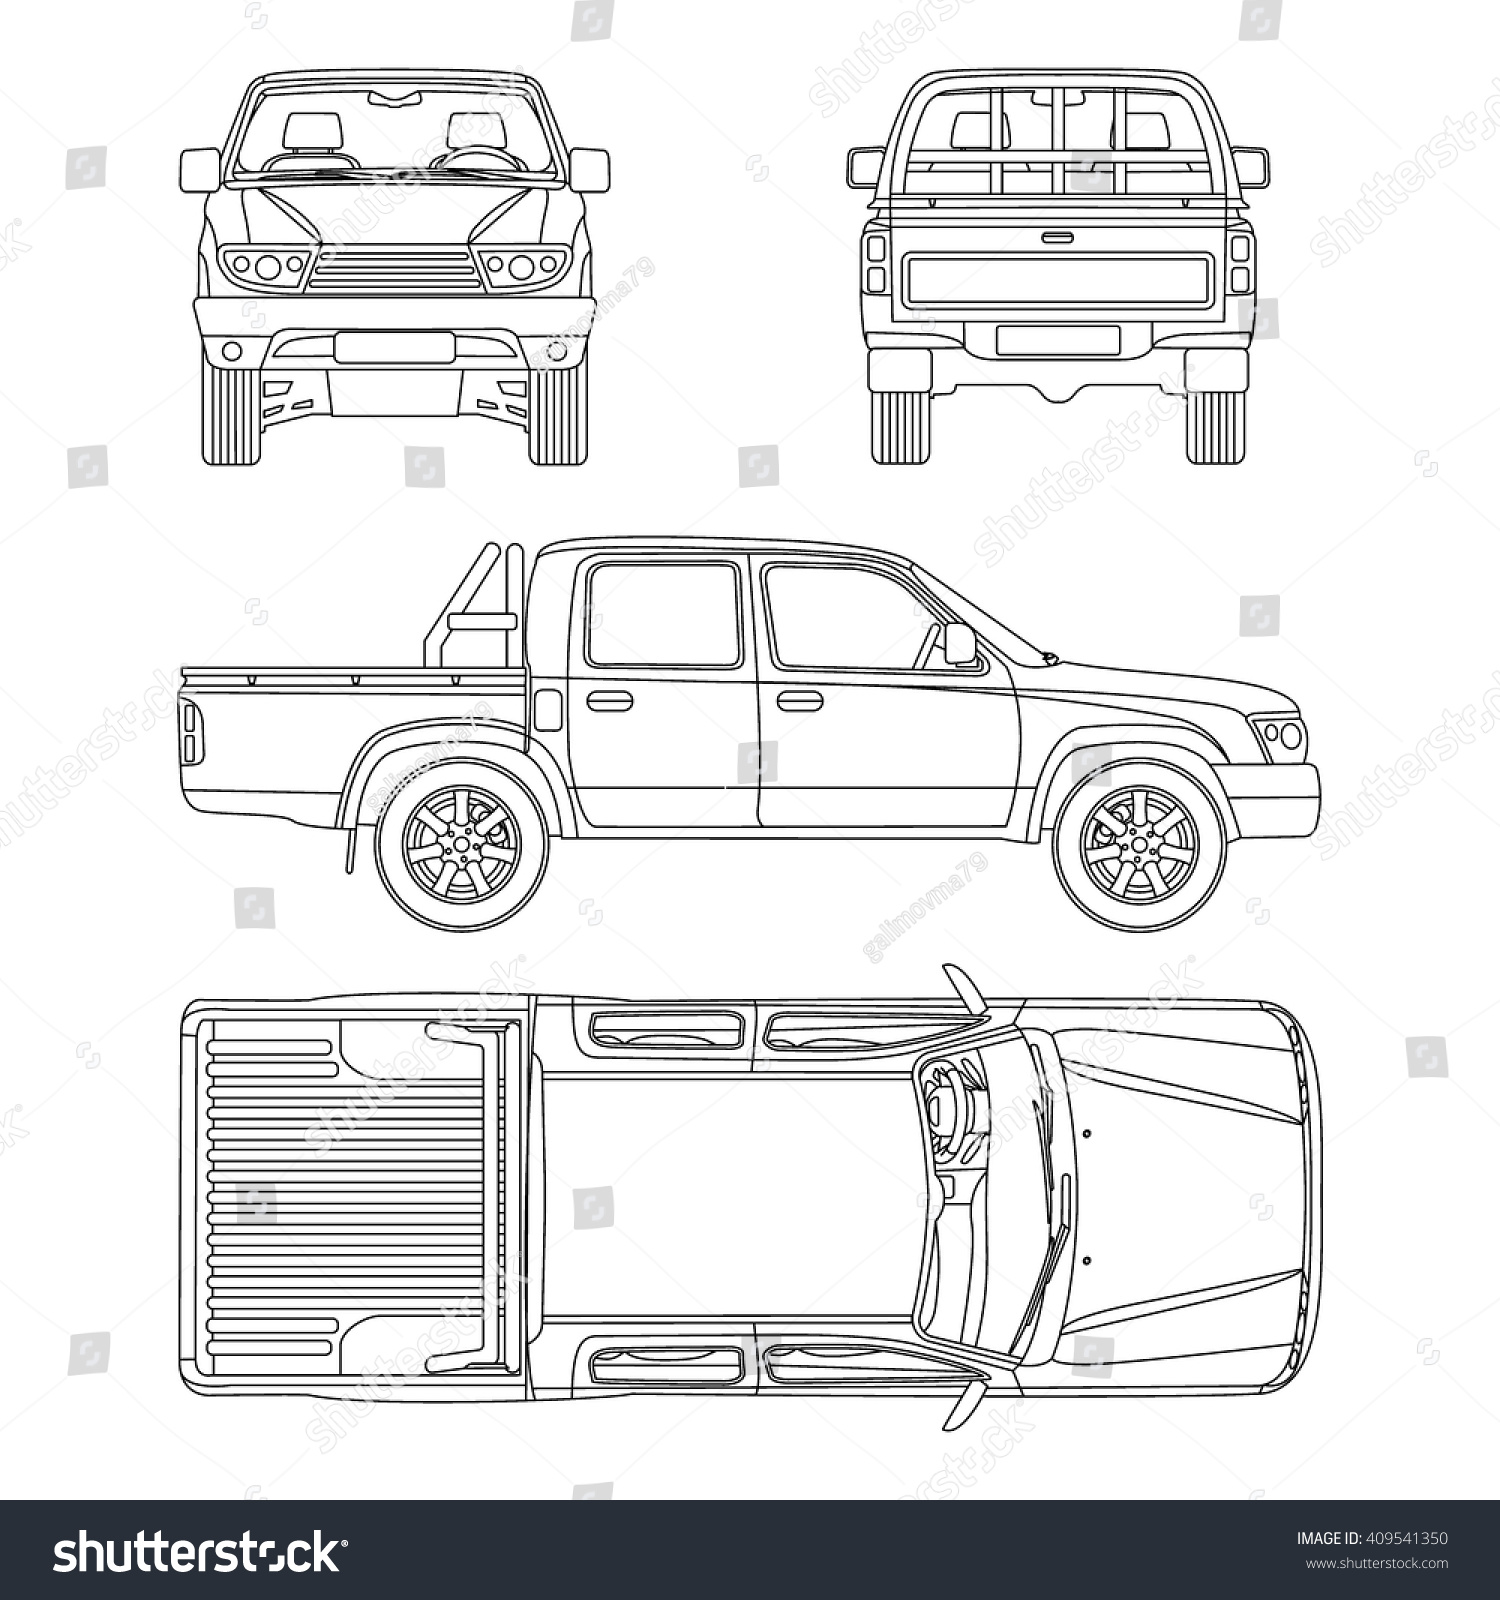 Car pickup truck double cab vector stock vector 409541350 car pickup truck double cab vector illustration blueprint malvernweather Gallery